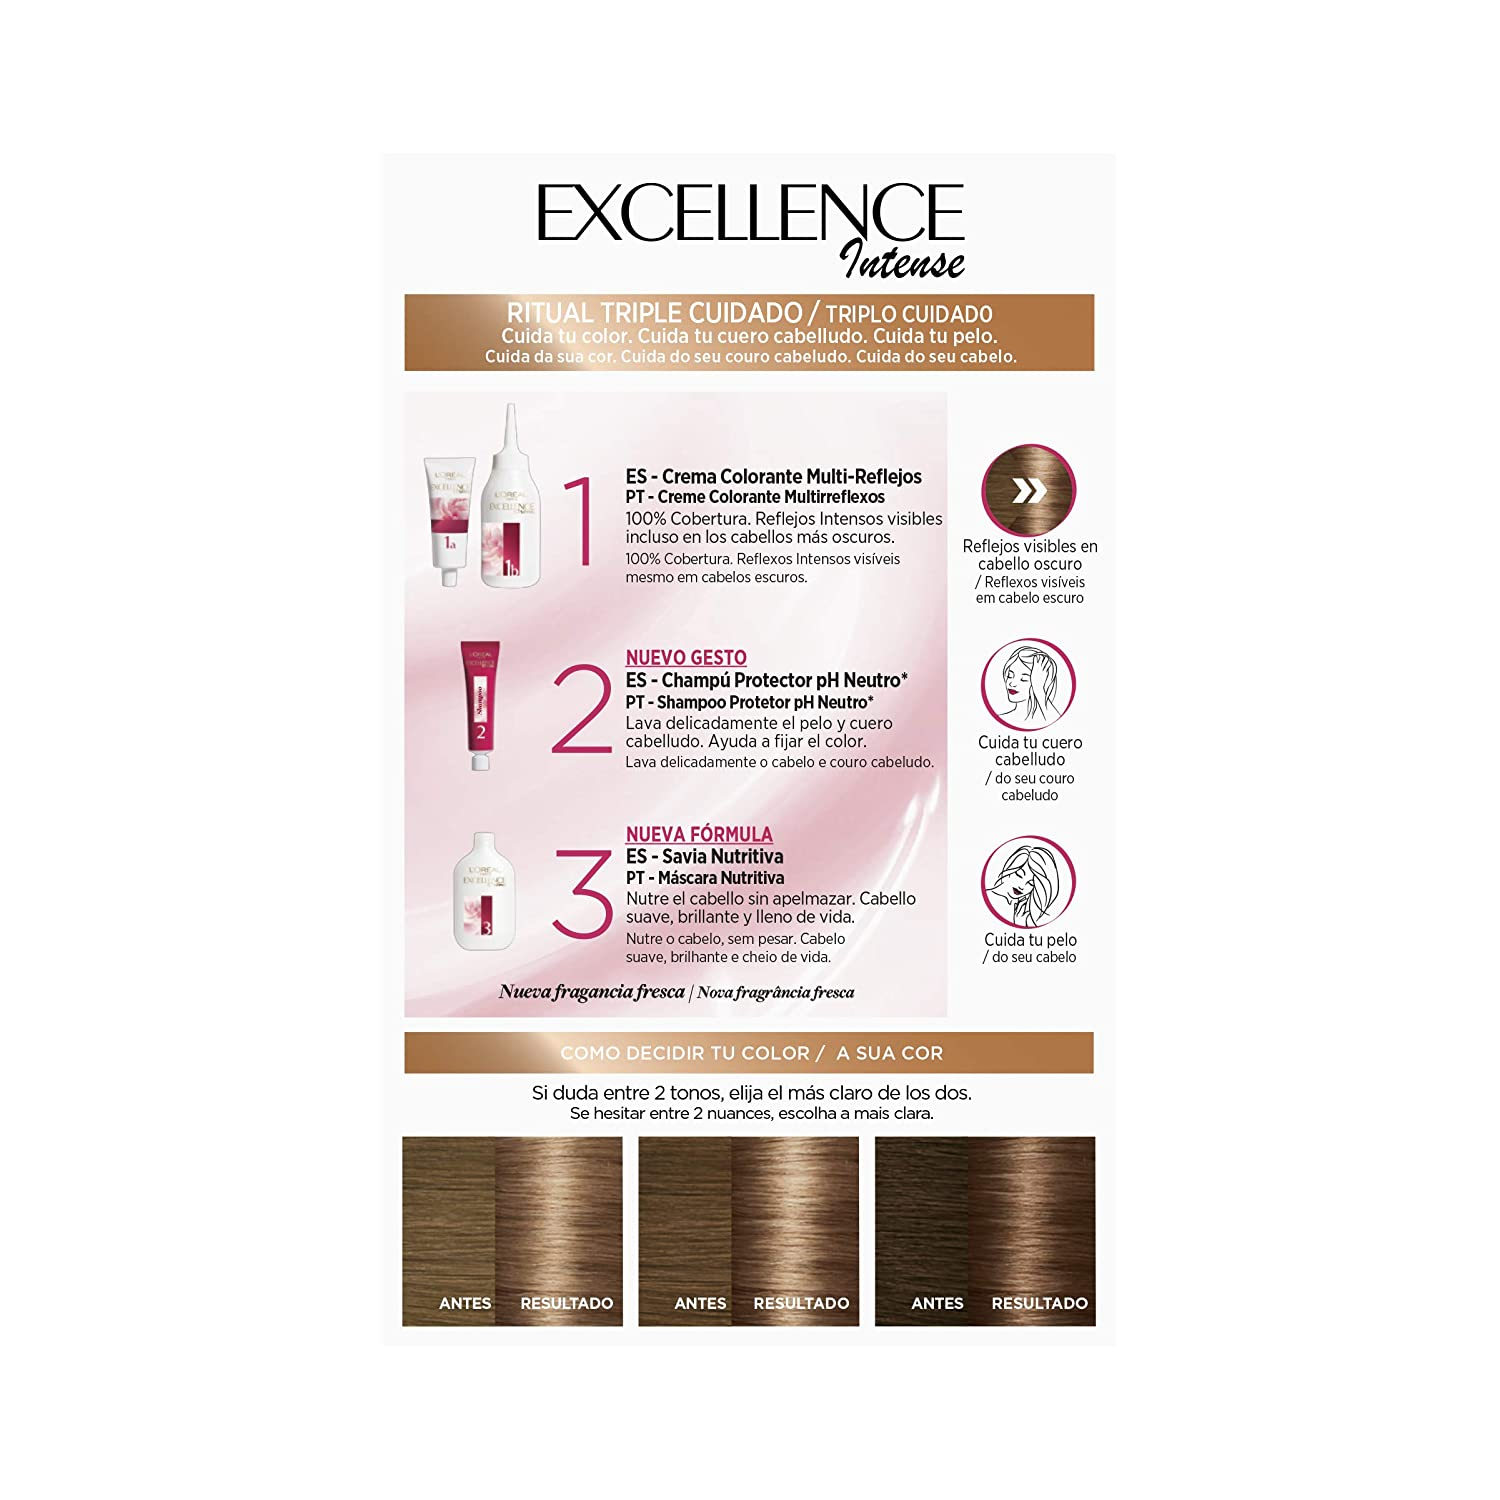 Amazon.com: EXCELLENCE INT 6.13 cool dark: Beauty